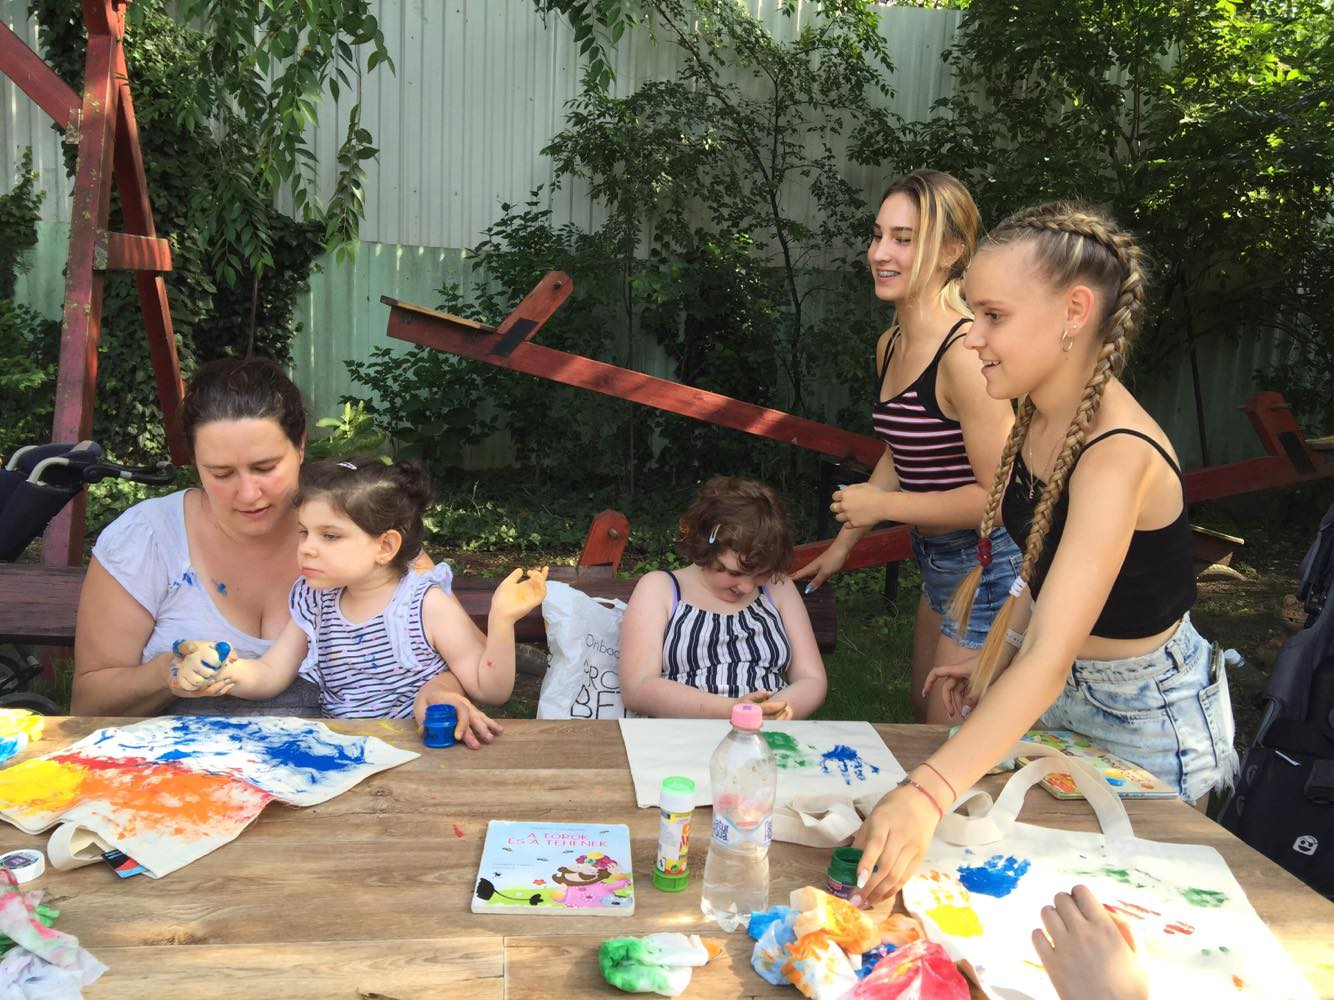 Both Artistic and Therapeutic Rett Summer Camps in Hungary organized by Hungarian Rett syndrome Foundation